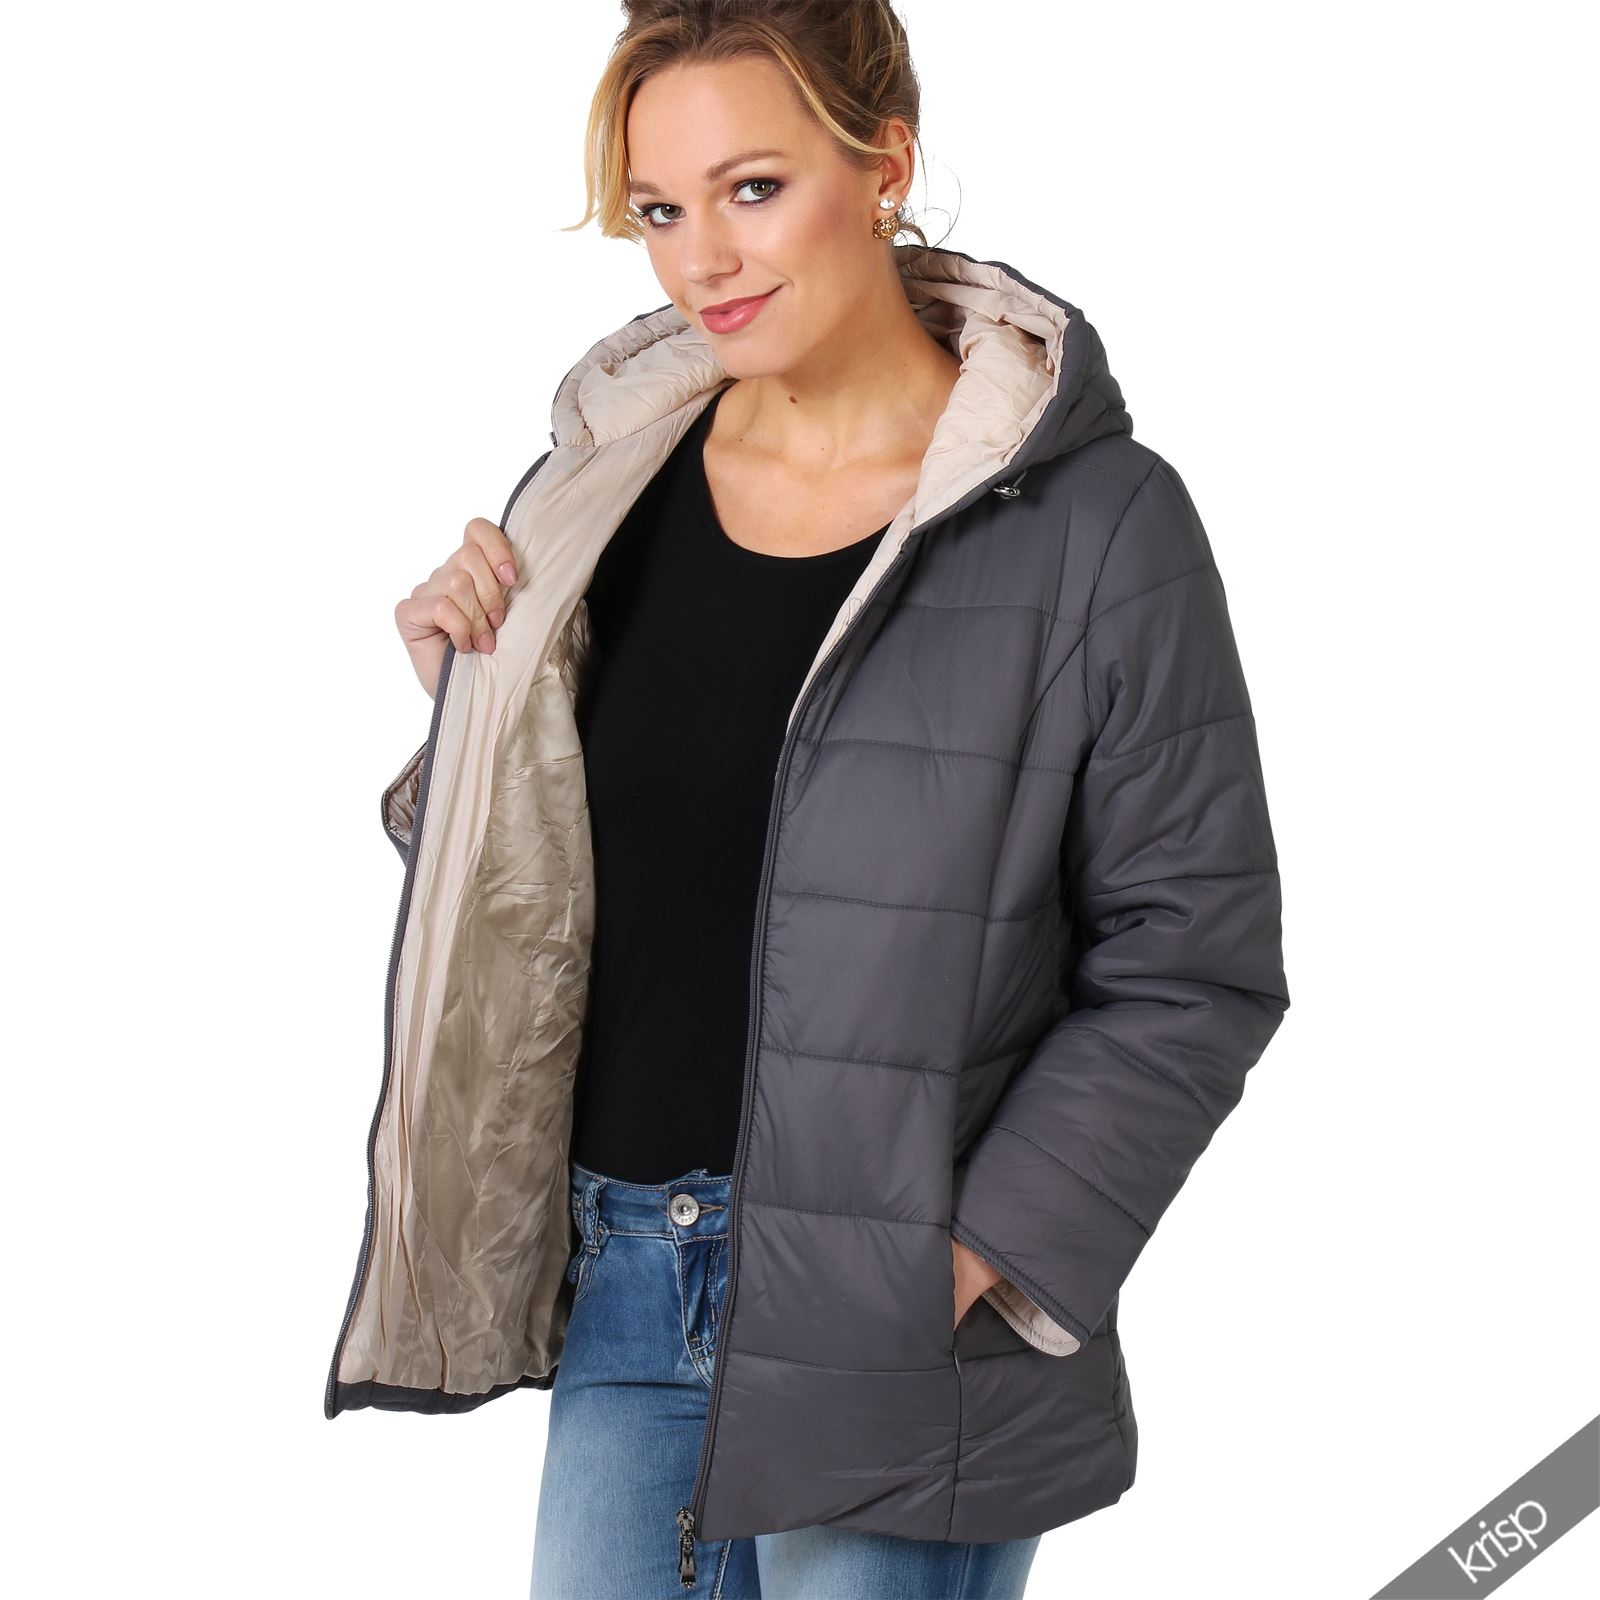 Hooded anorak jacket women